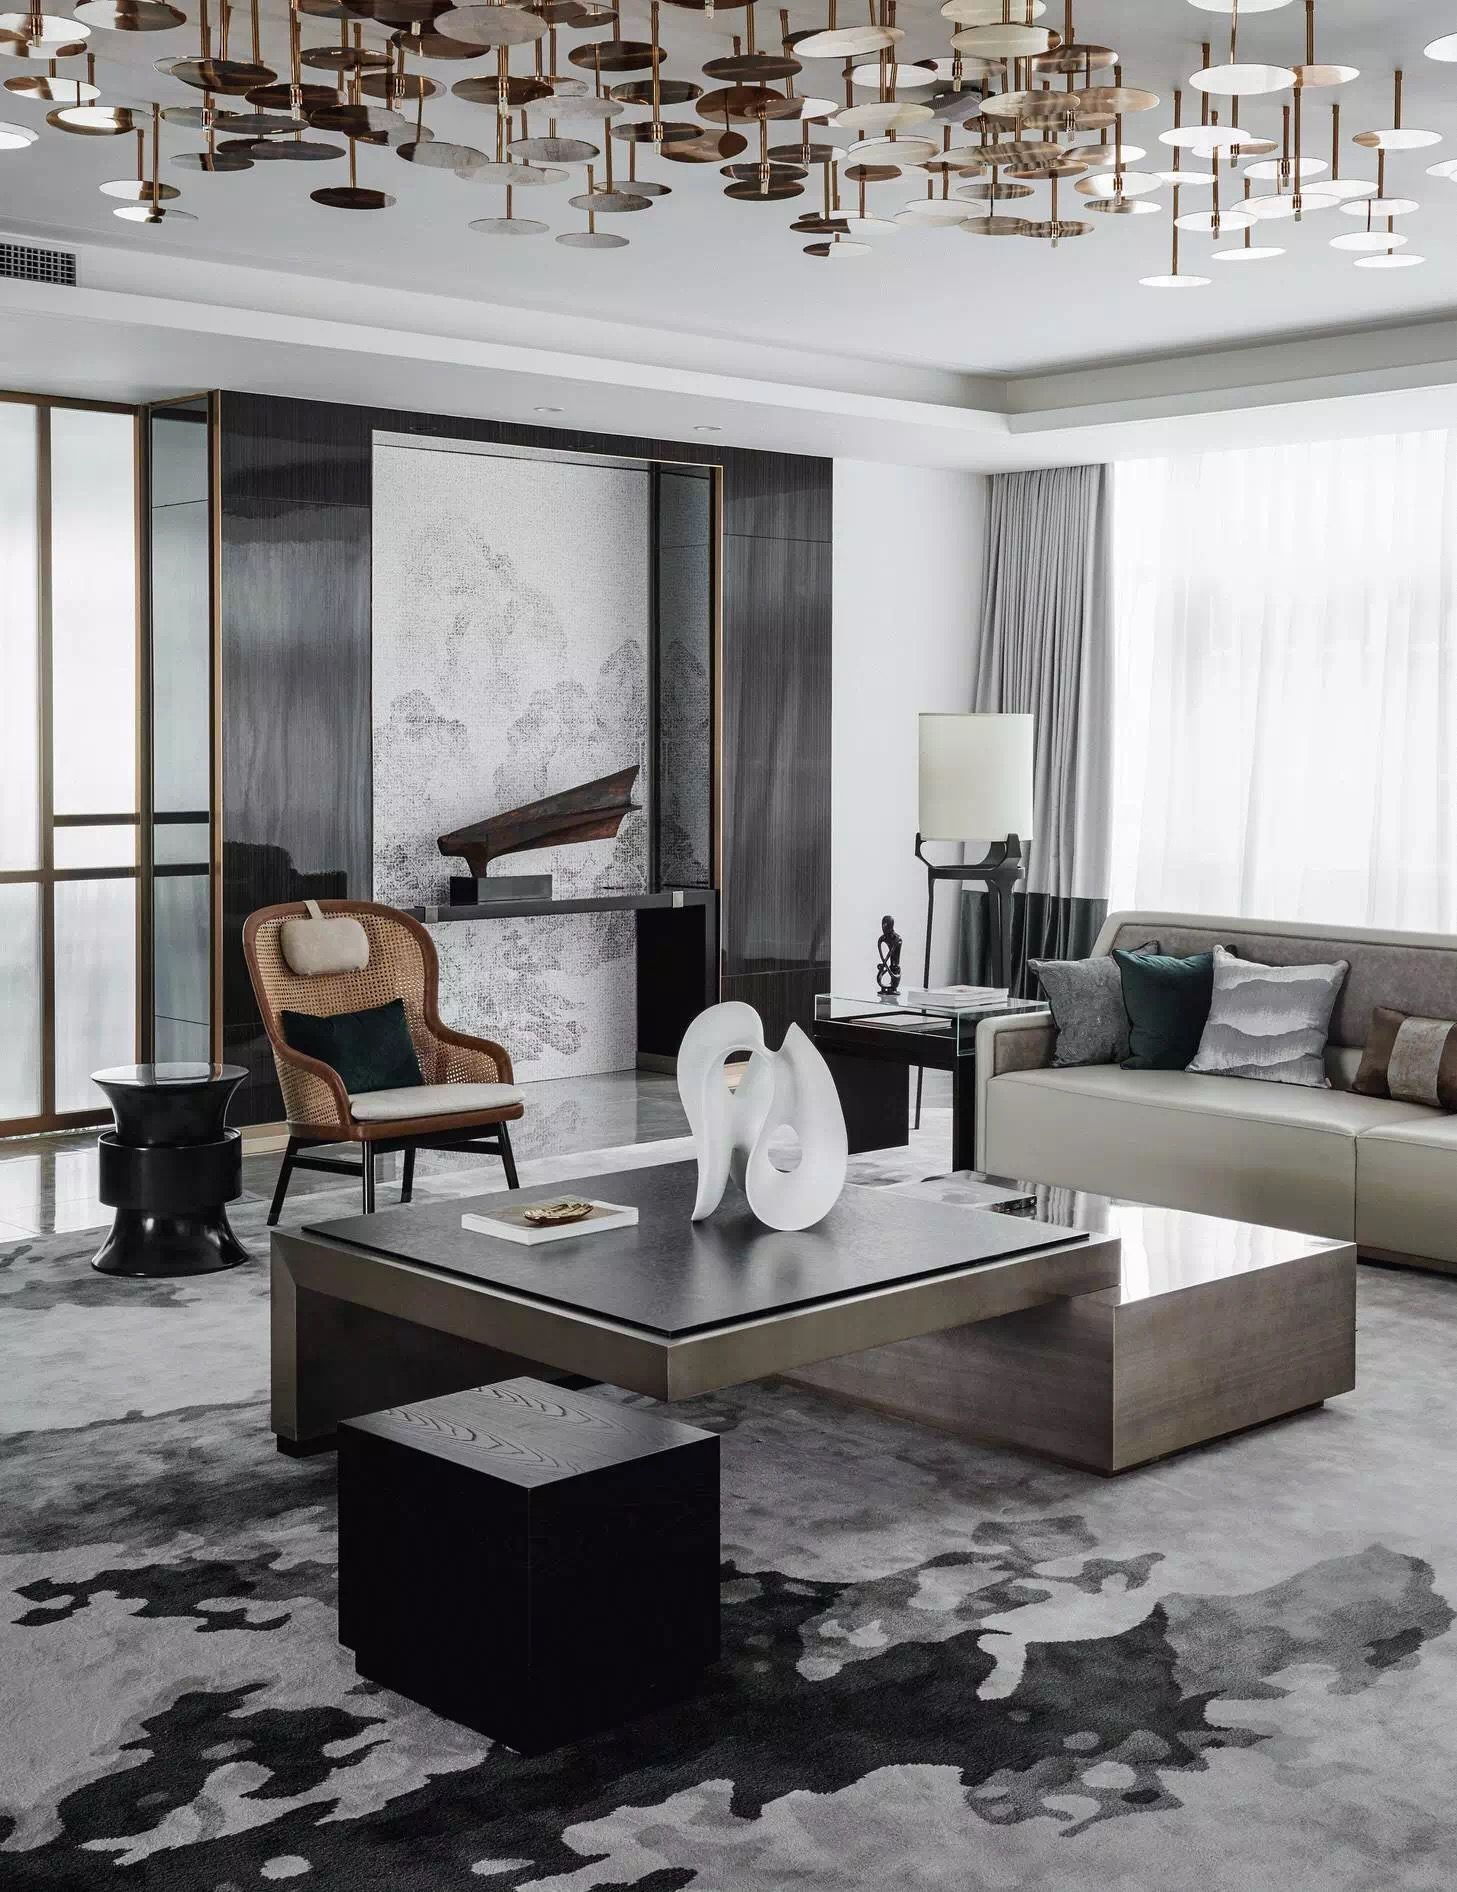 201 Living Room Contemporary Ideas 2021 in 2020 ...